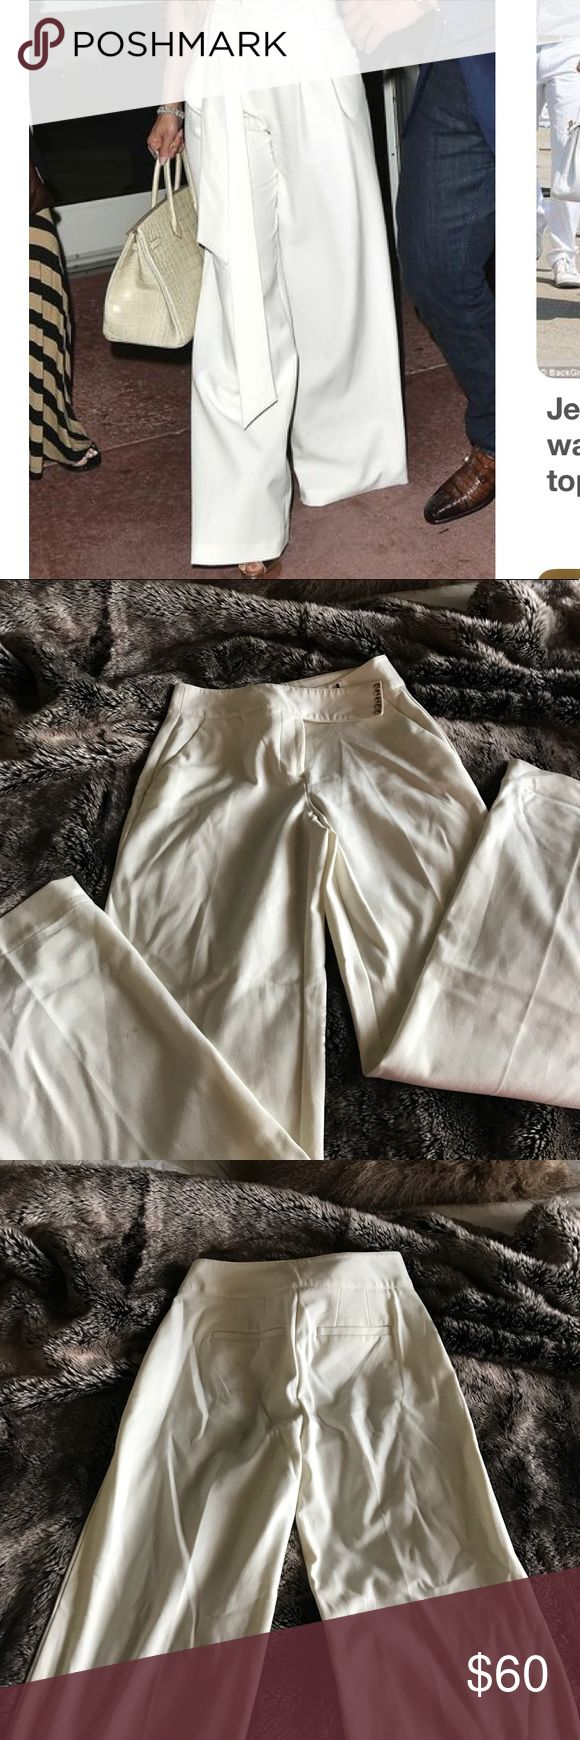 High wasted pants Jenifer Lopez high wasted super extended cuffs. Embroidered belt goes great from work to social Jennifer Lopez Pants Wide Leg